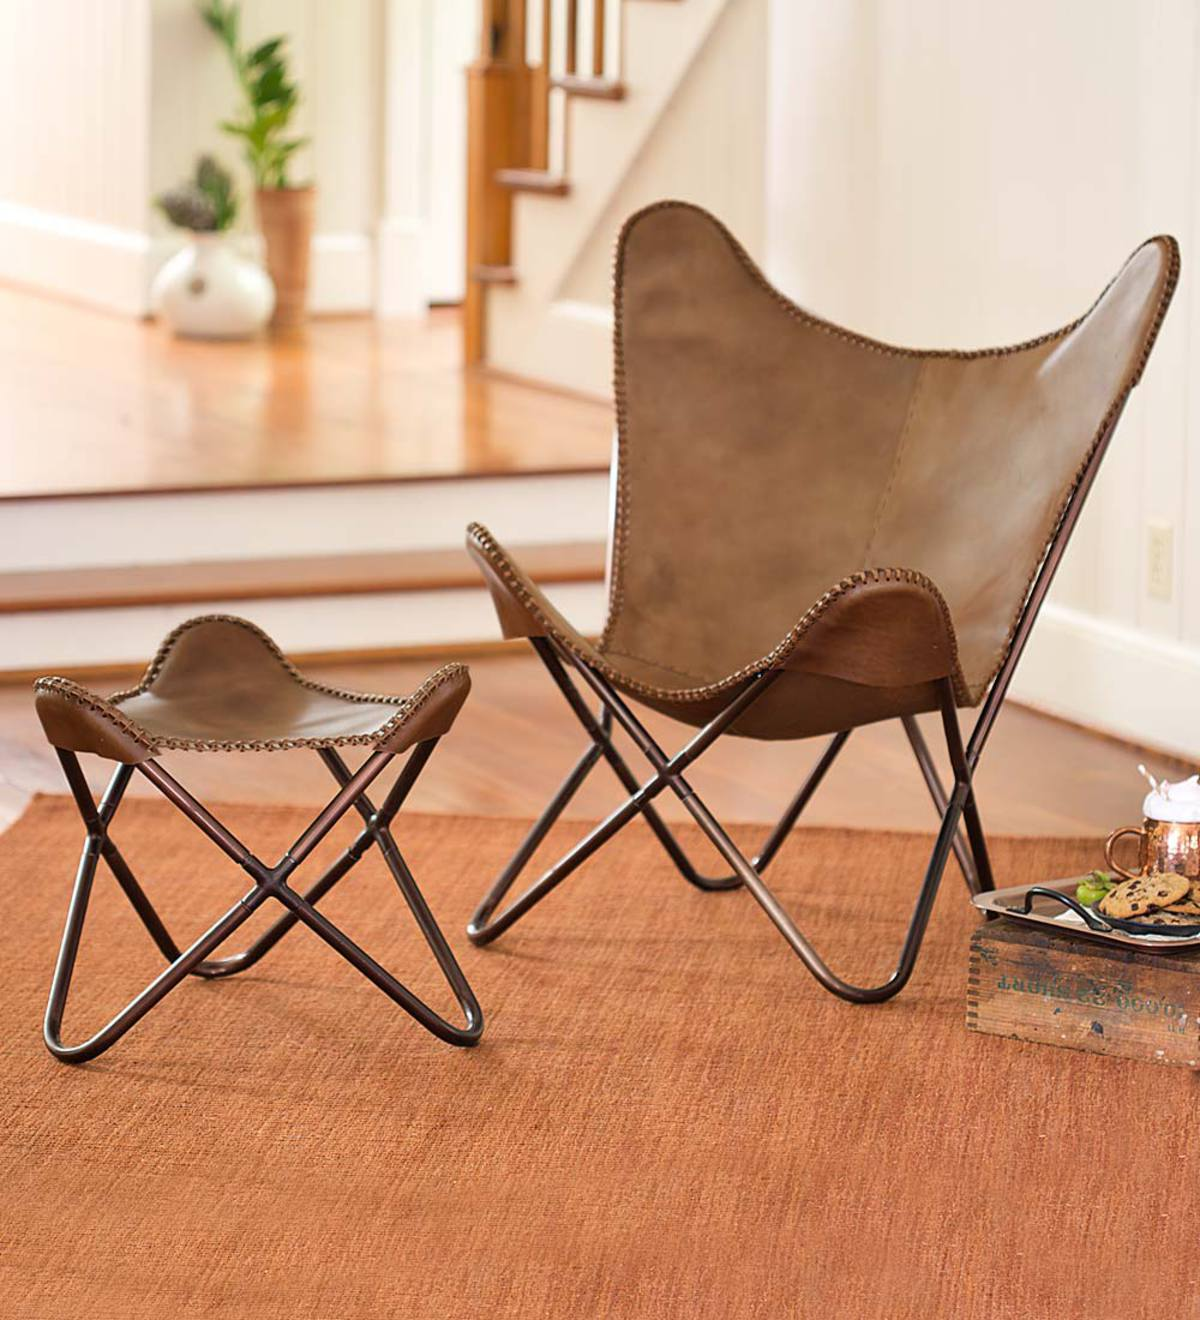 Miraculous Leather Butterfly Sling Chair And Ottoman Plowhearth Spiritservingveterans Wood Chair Design Ideas Spiritservingveteransorg